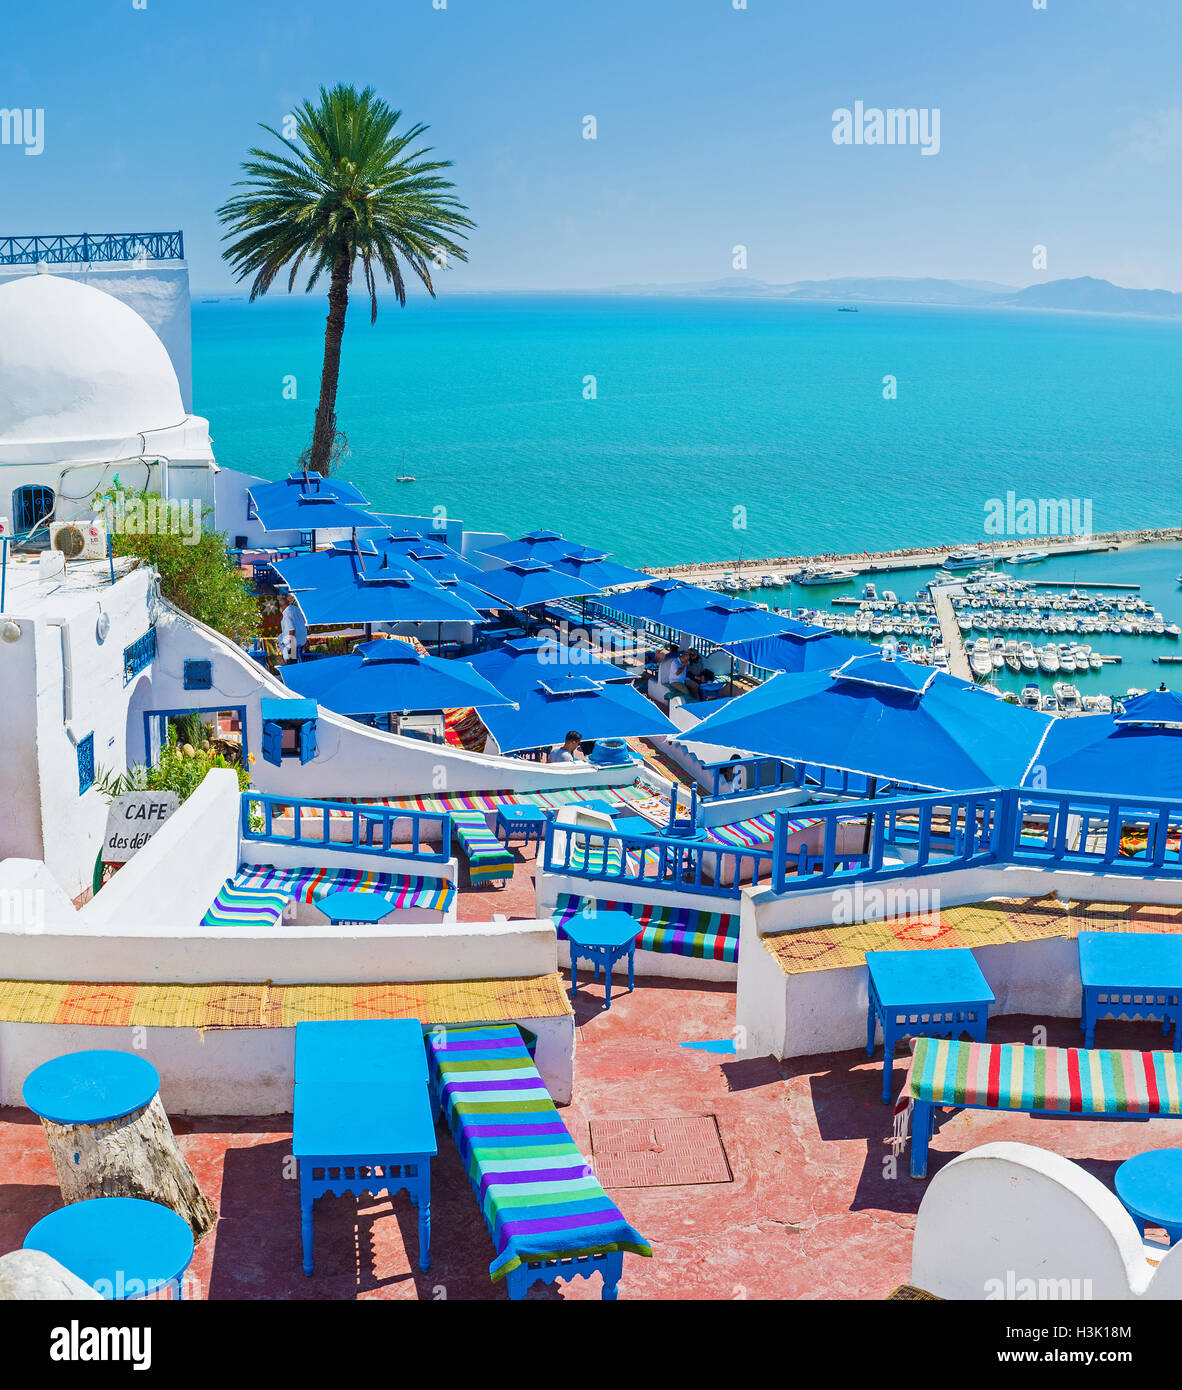 The village offers all the facilities for the best time spending and relax in Sidi Bou Said. - Stock Image